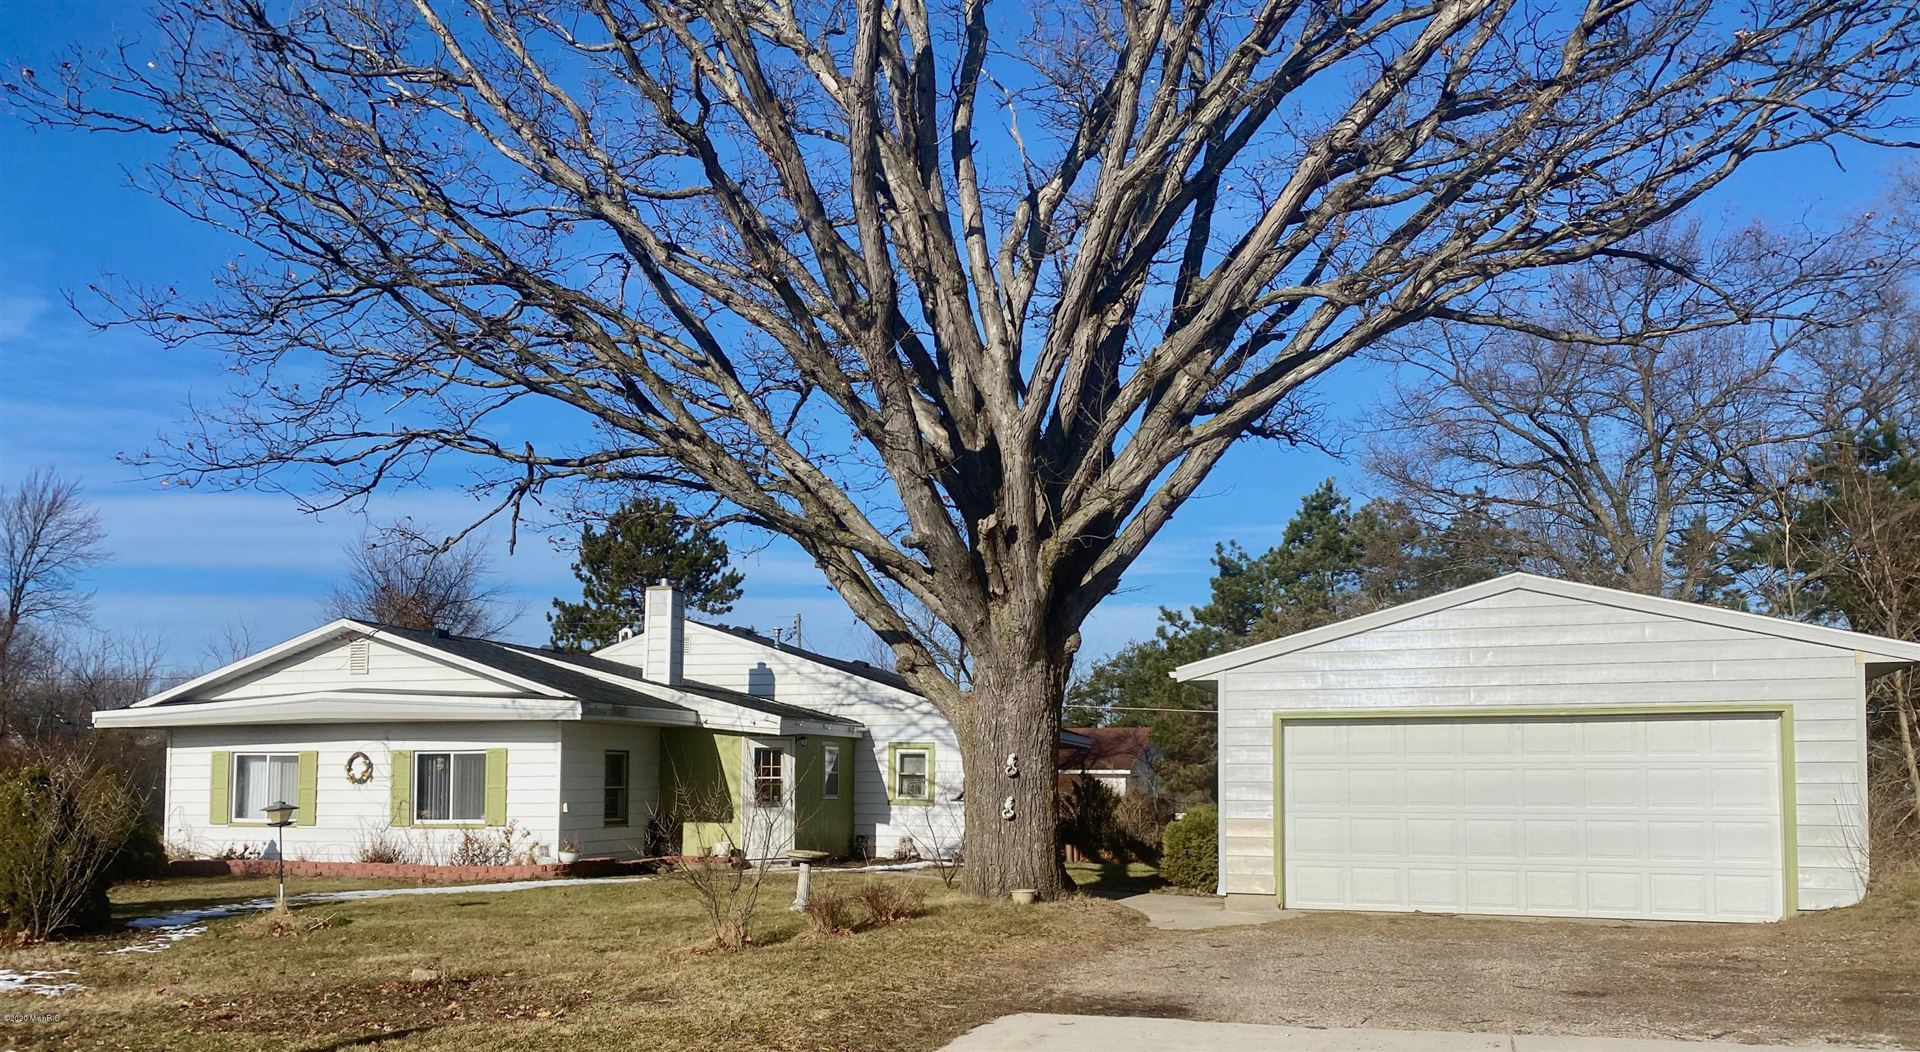 1003 Lawndale Street, Ludington, MI 49431 - MLS#: 20003471